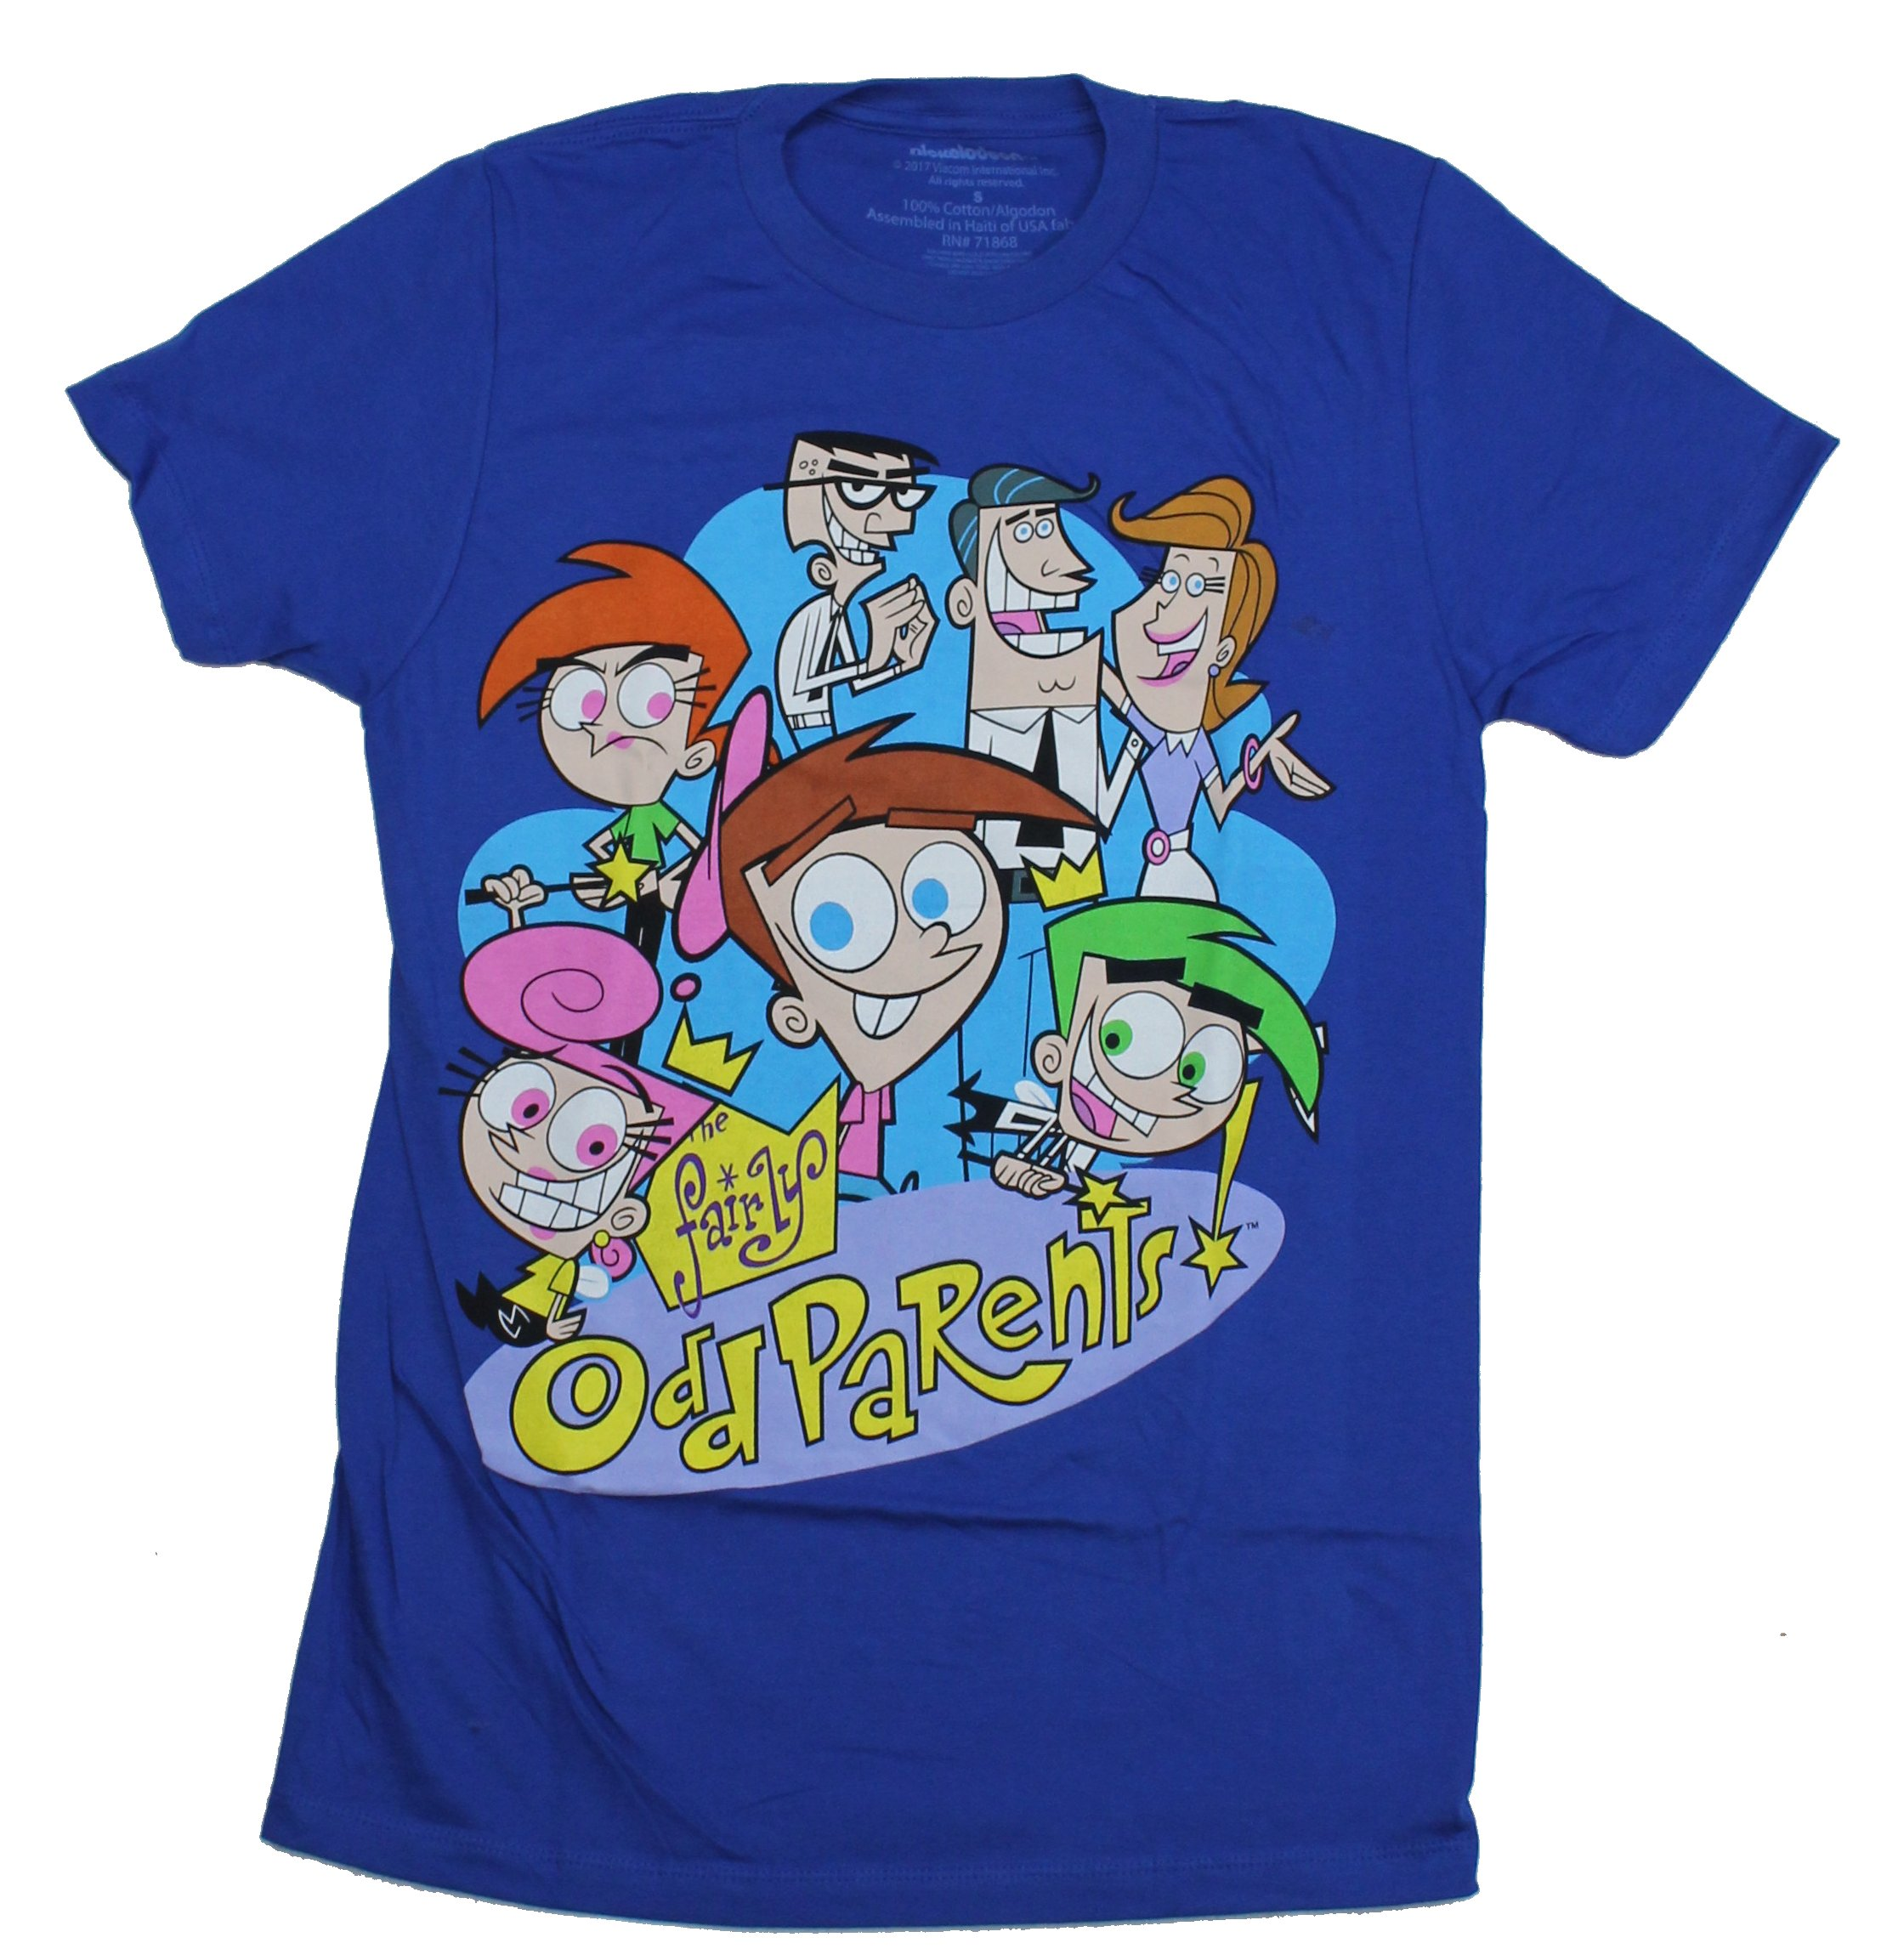 Fairly Odd Parents Photos details about fairly odd parents mens t-shirt - giant cast image in logo